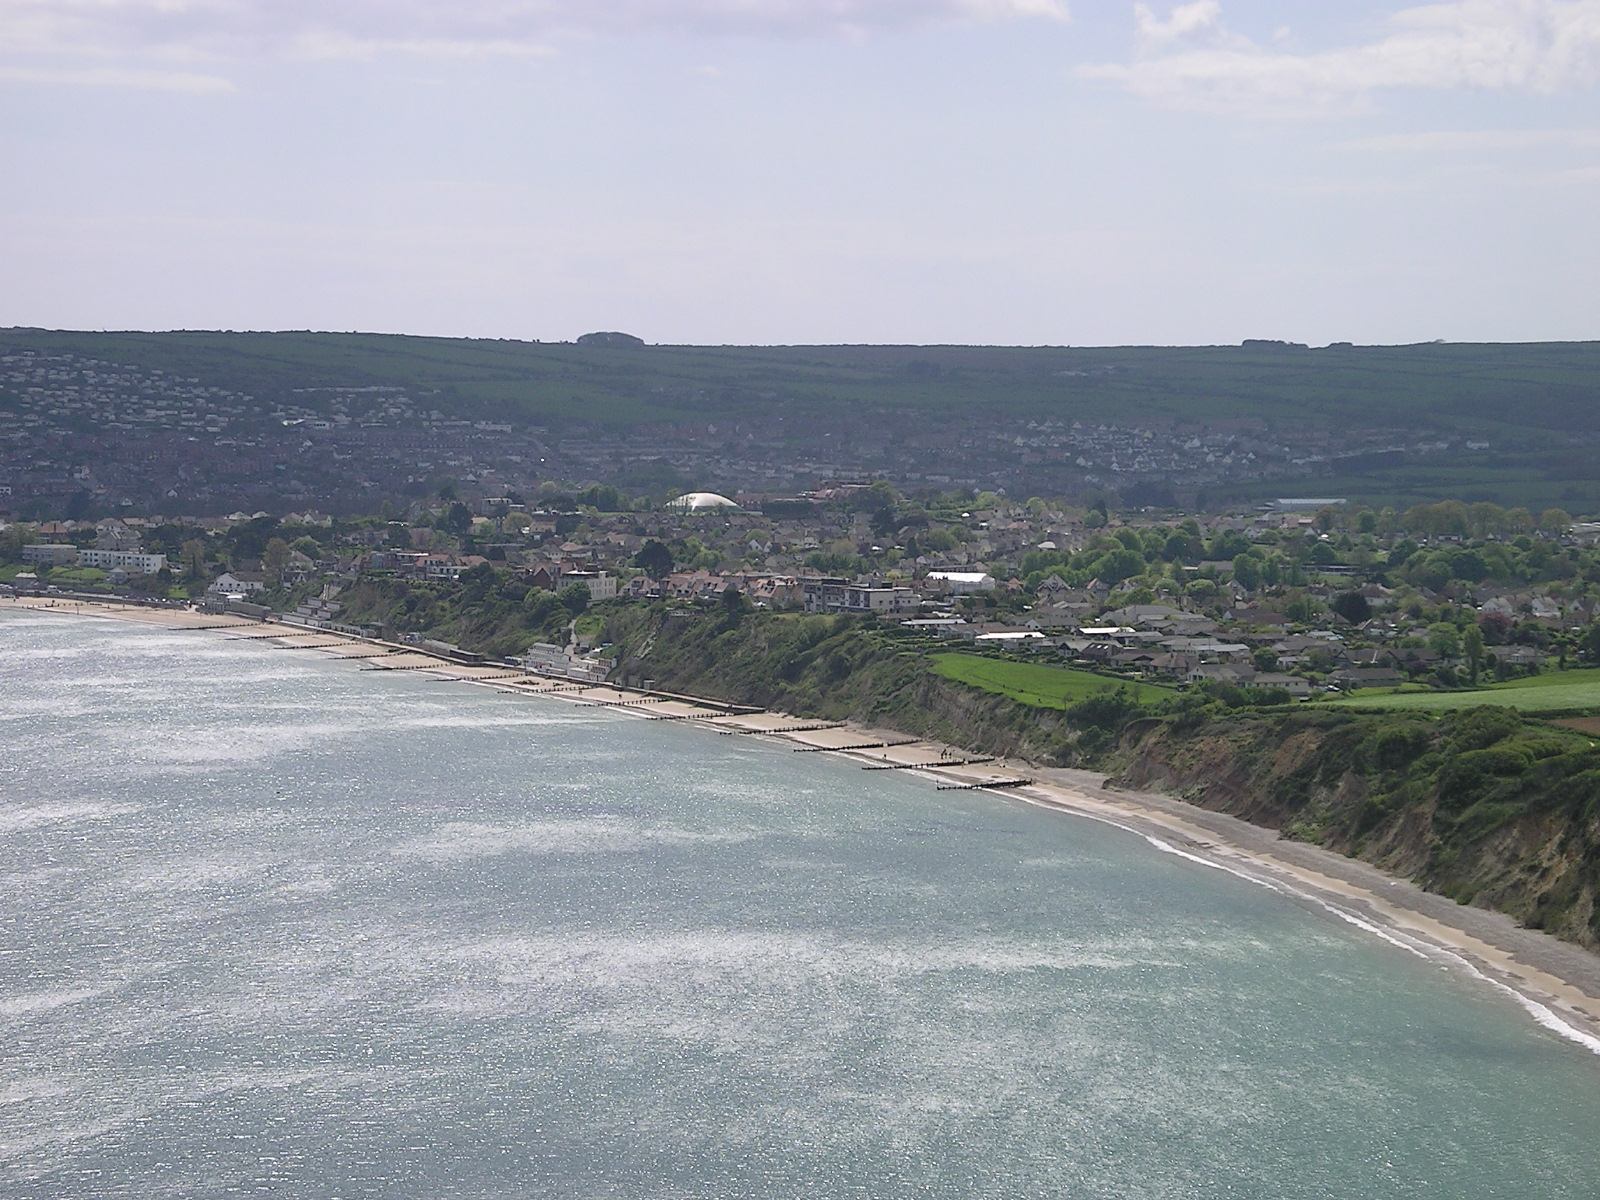 Depiction of Swanage